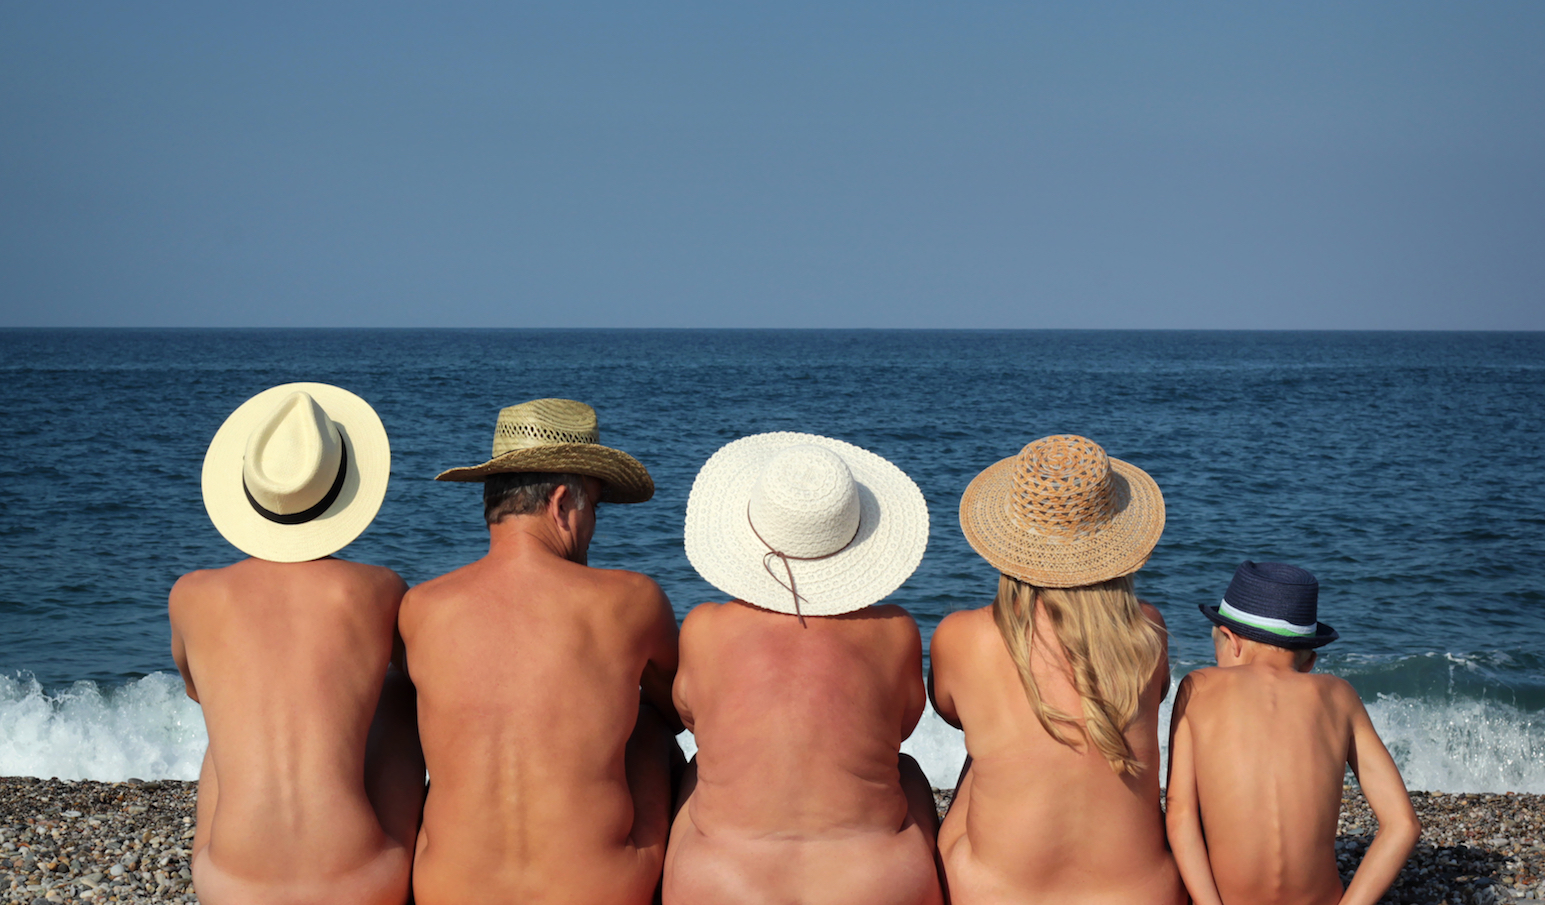 Australia beach nudist